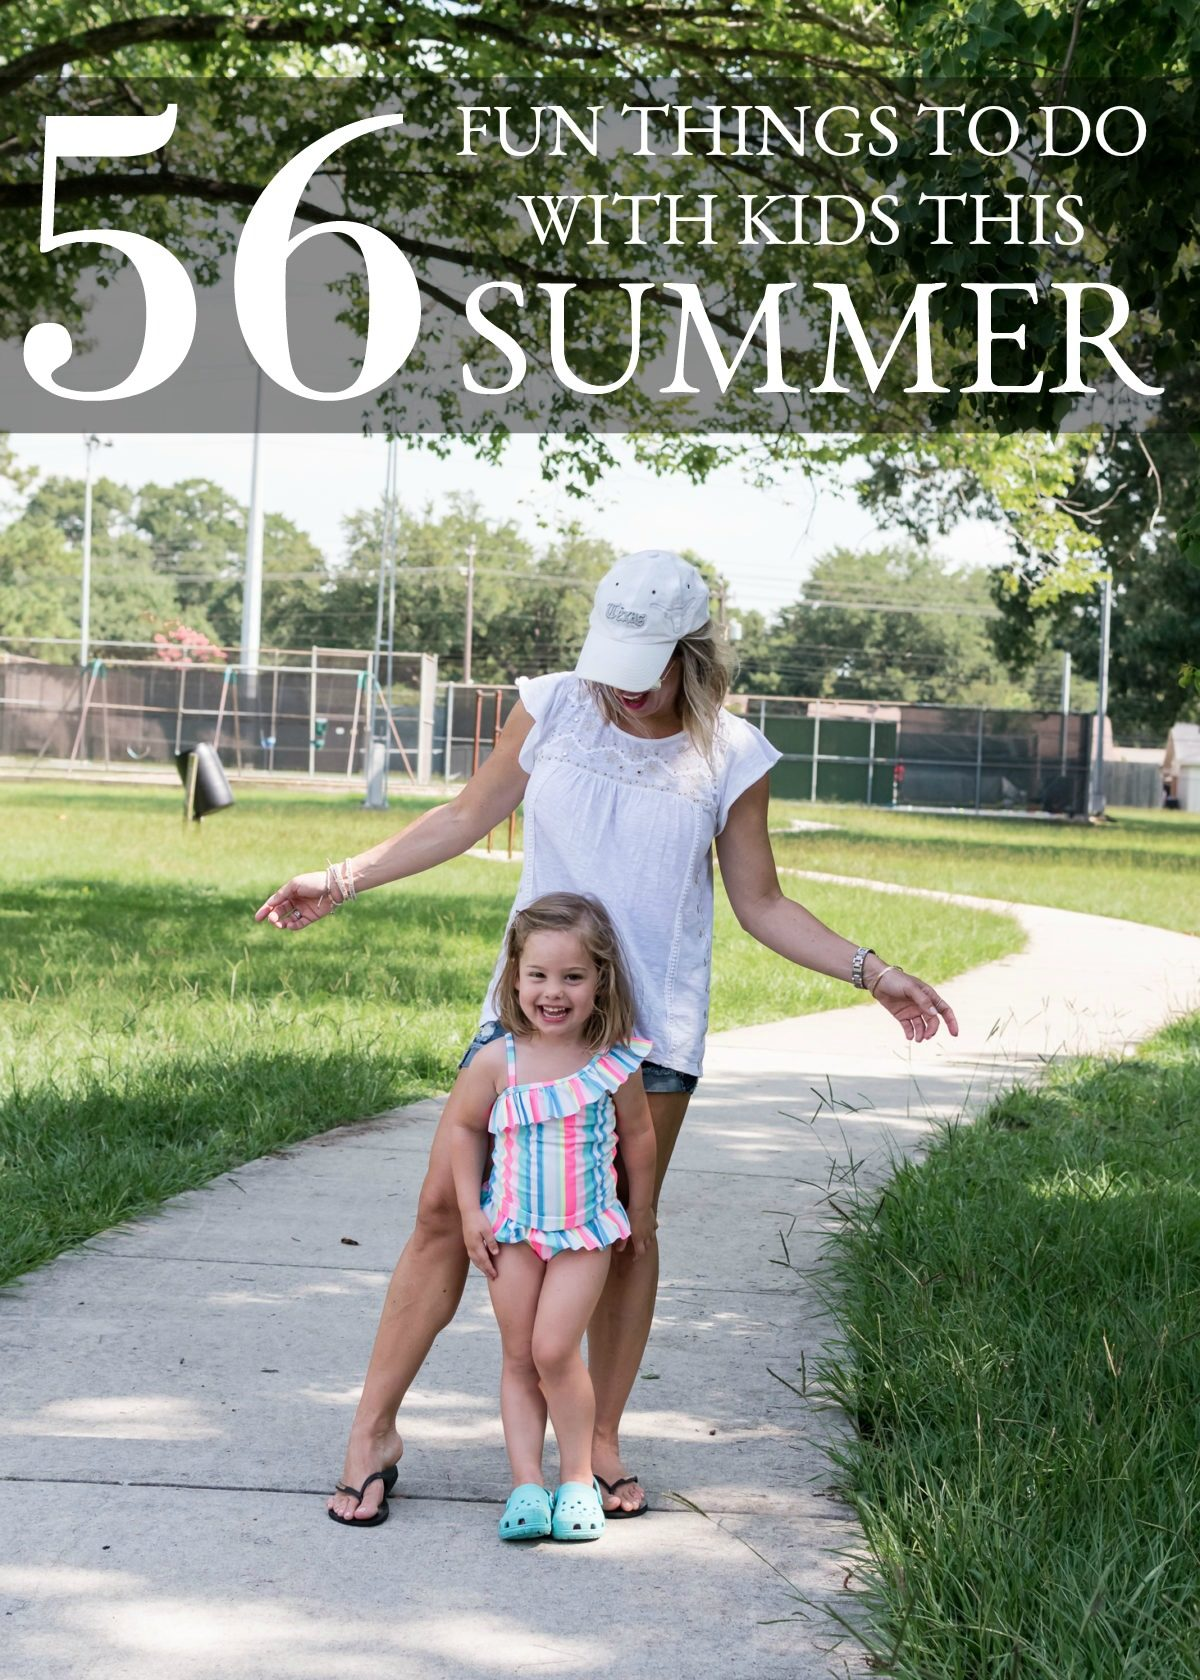 56 Fun Things to Do with Kids this Summer